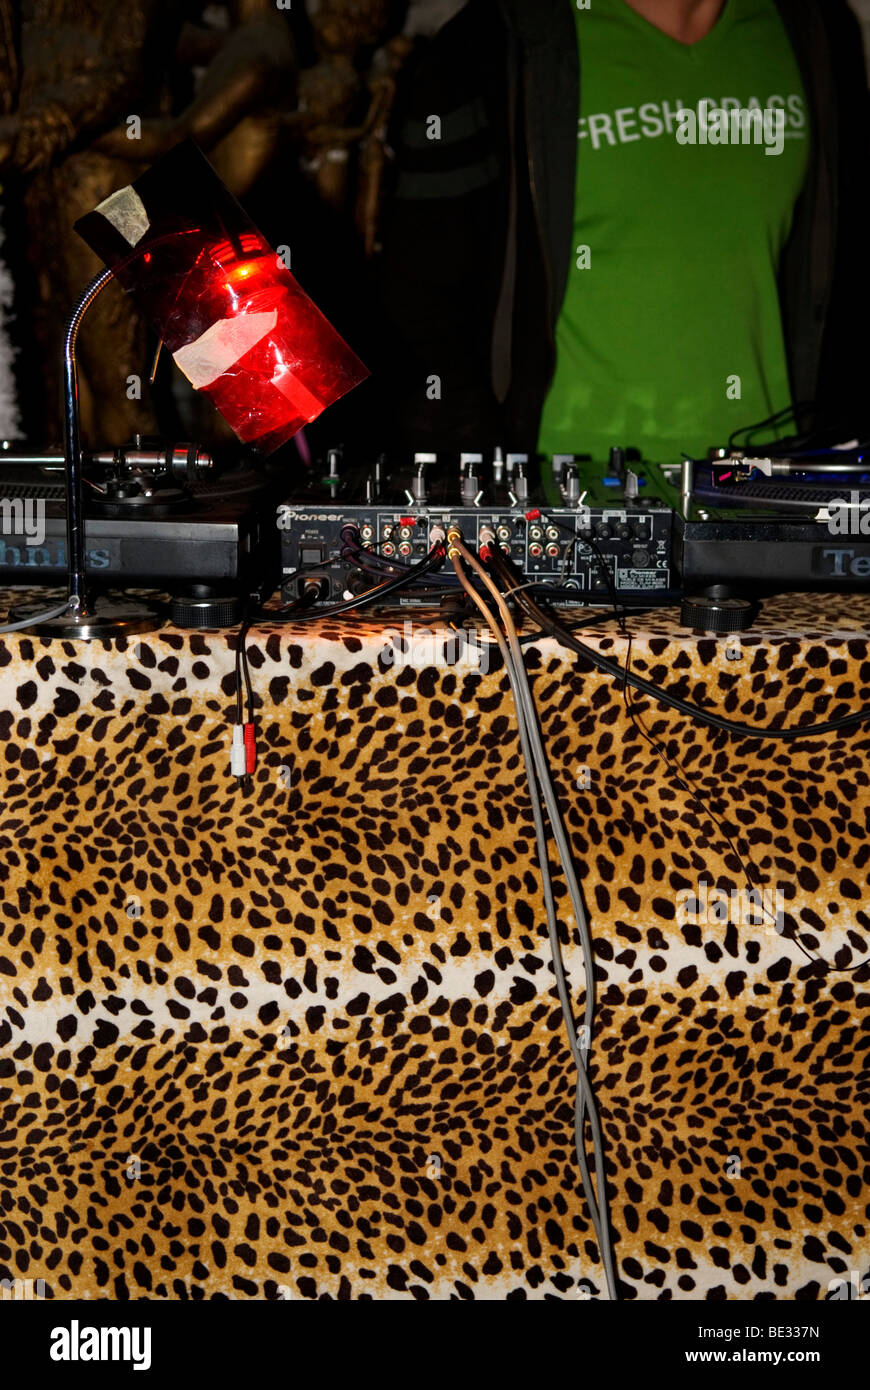 cropped view of dj at work on his turntables - Stock Image